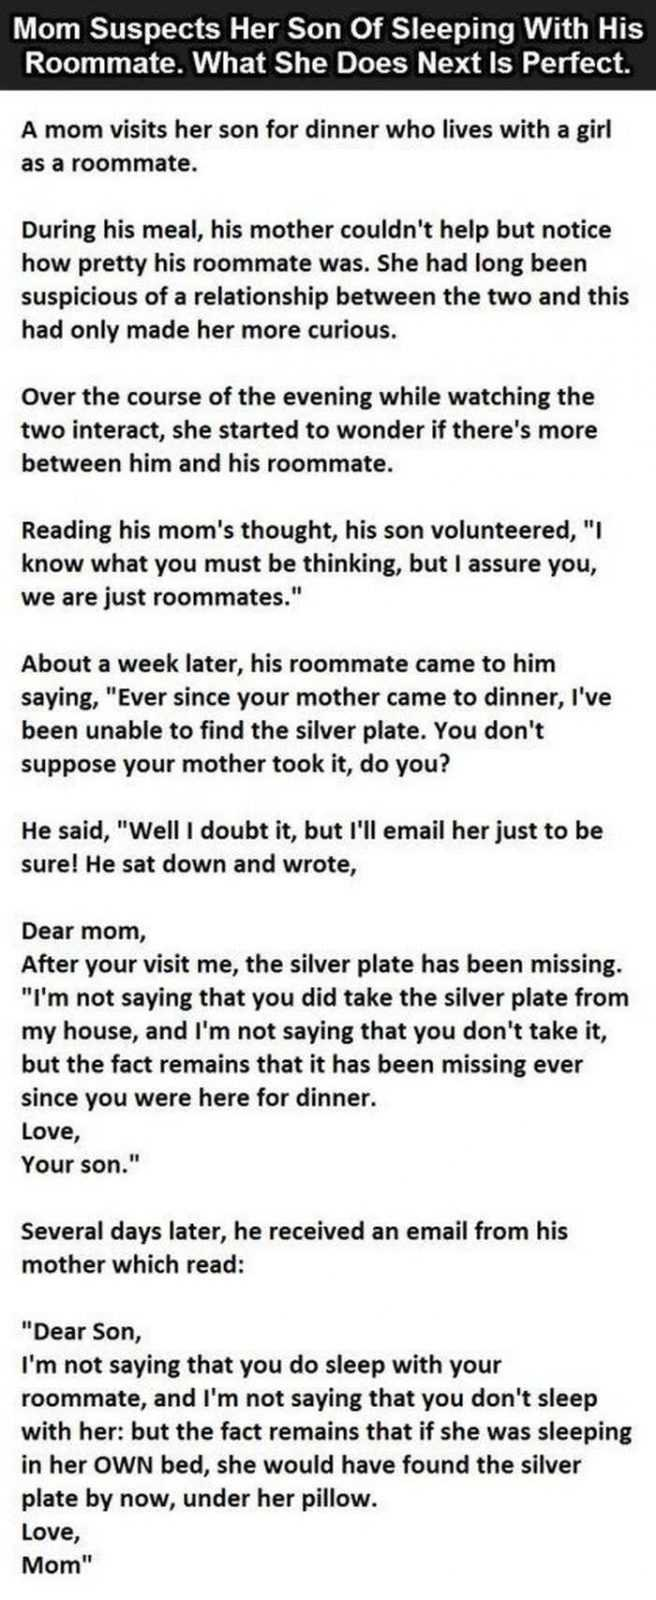 Funny Short Story About A Mom's Intuition